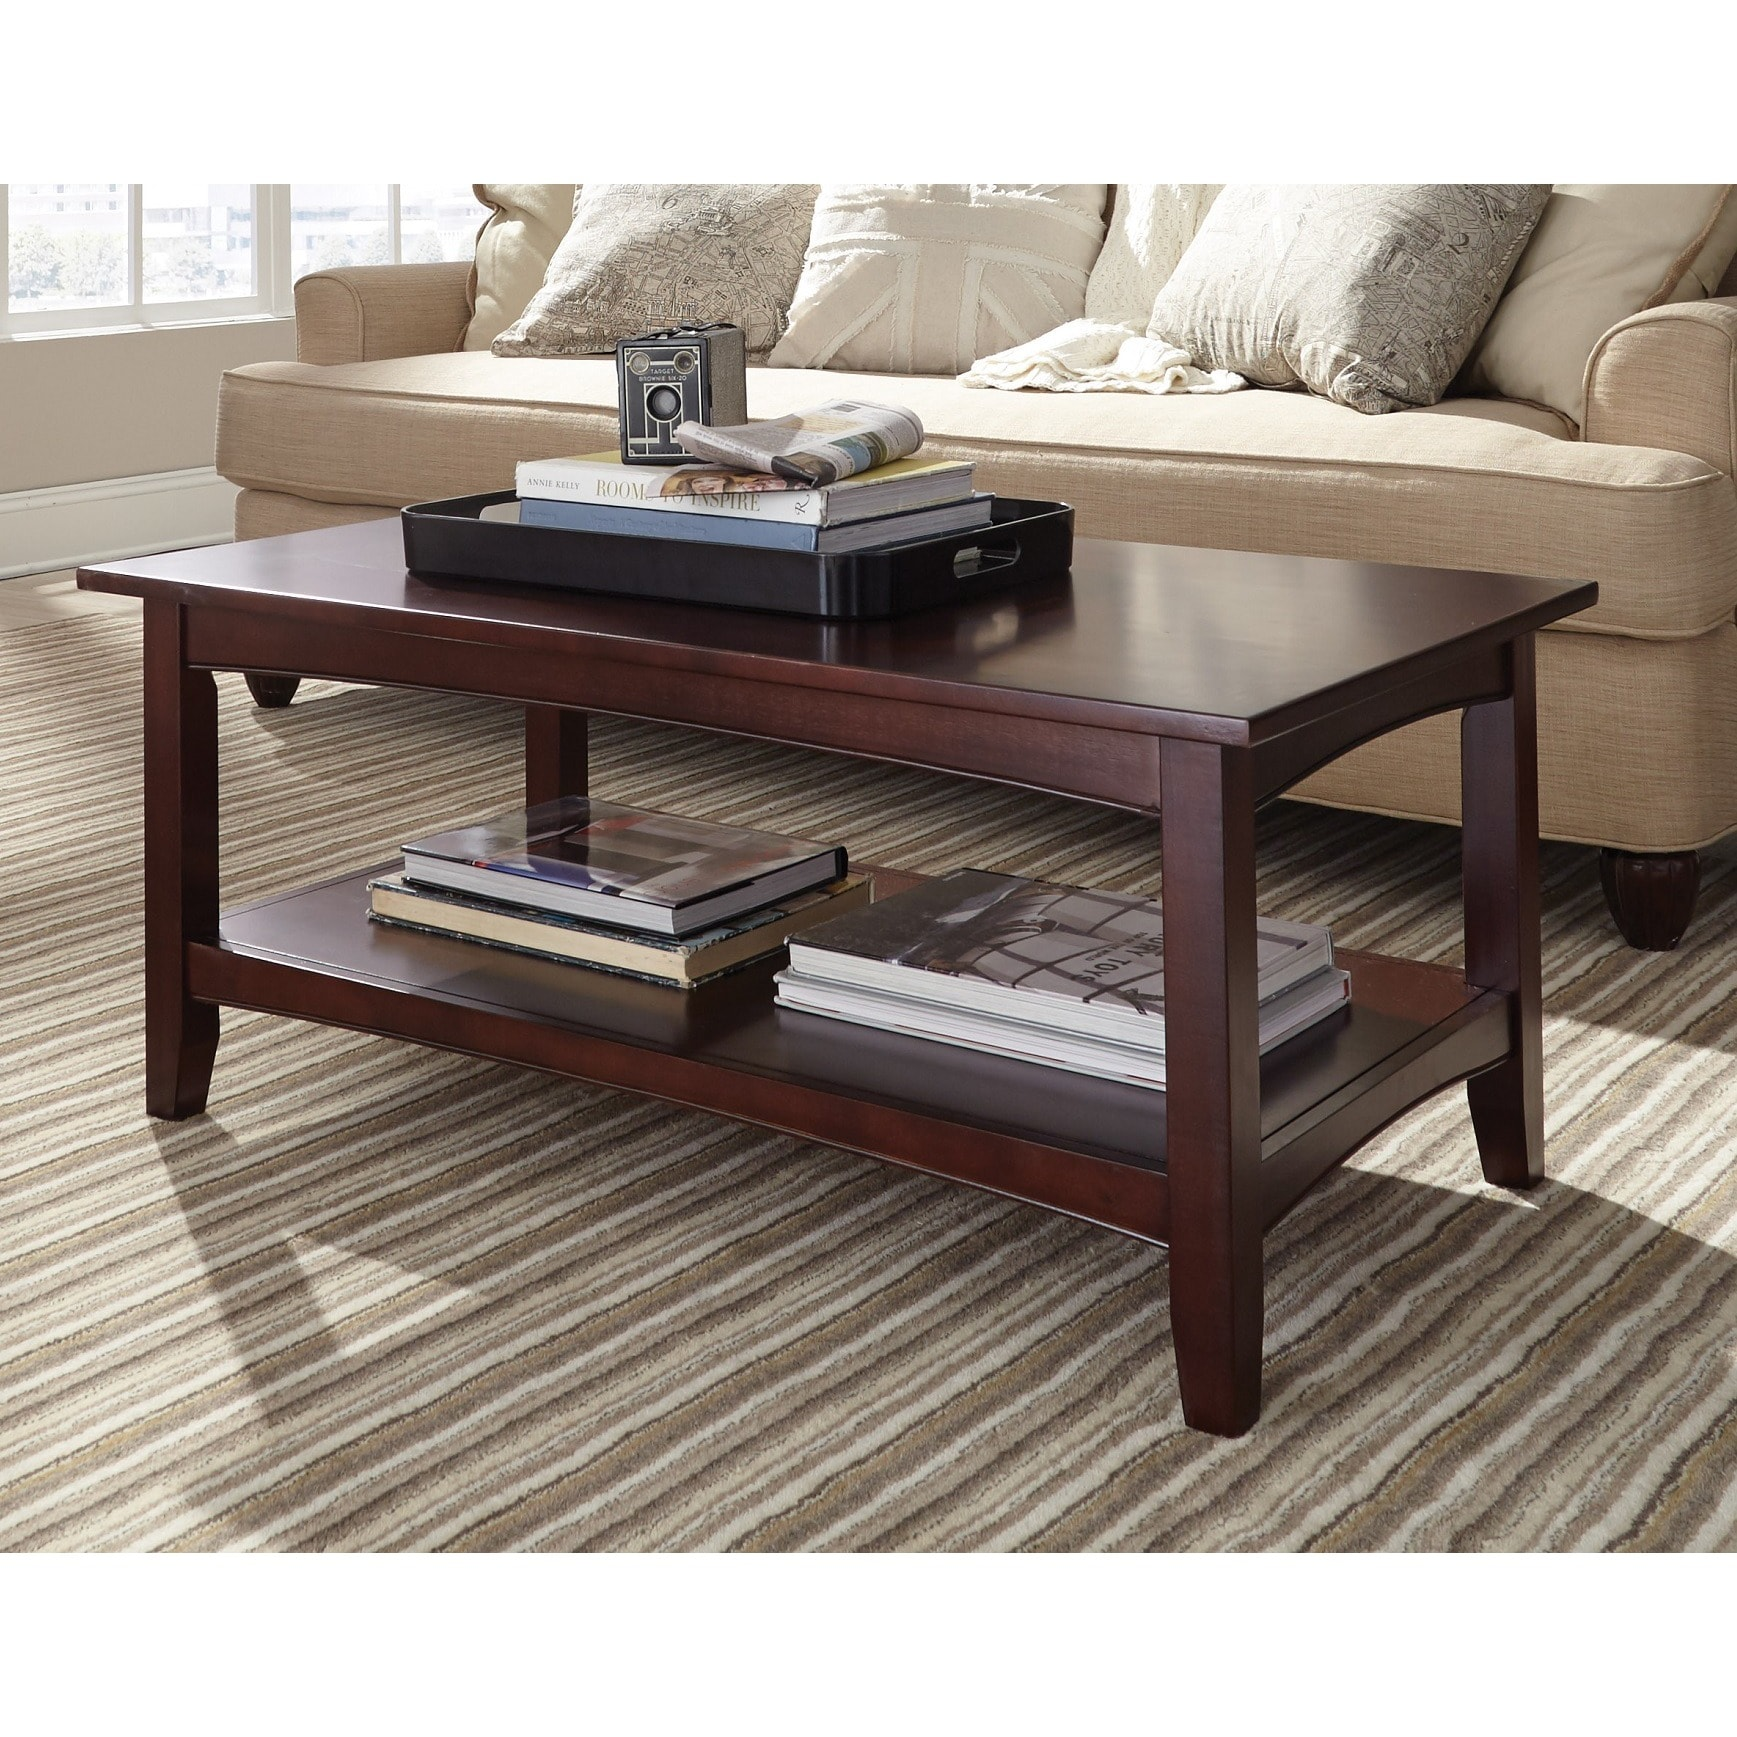 Copper And Wood Coffee Table: Shop Copper Grove Angelina 42-inch Wood Coffee Table With